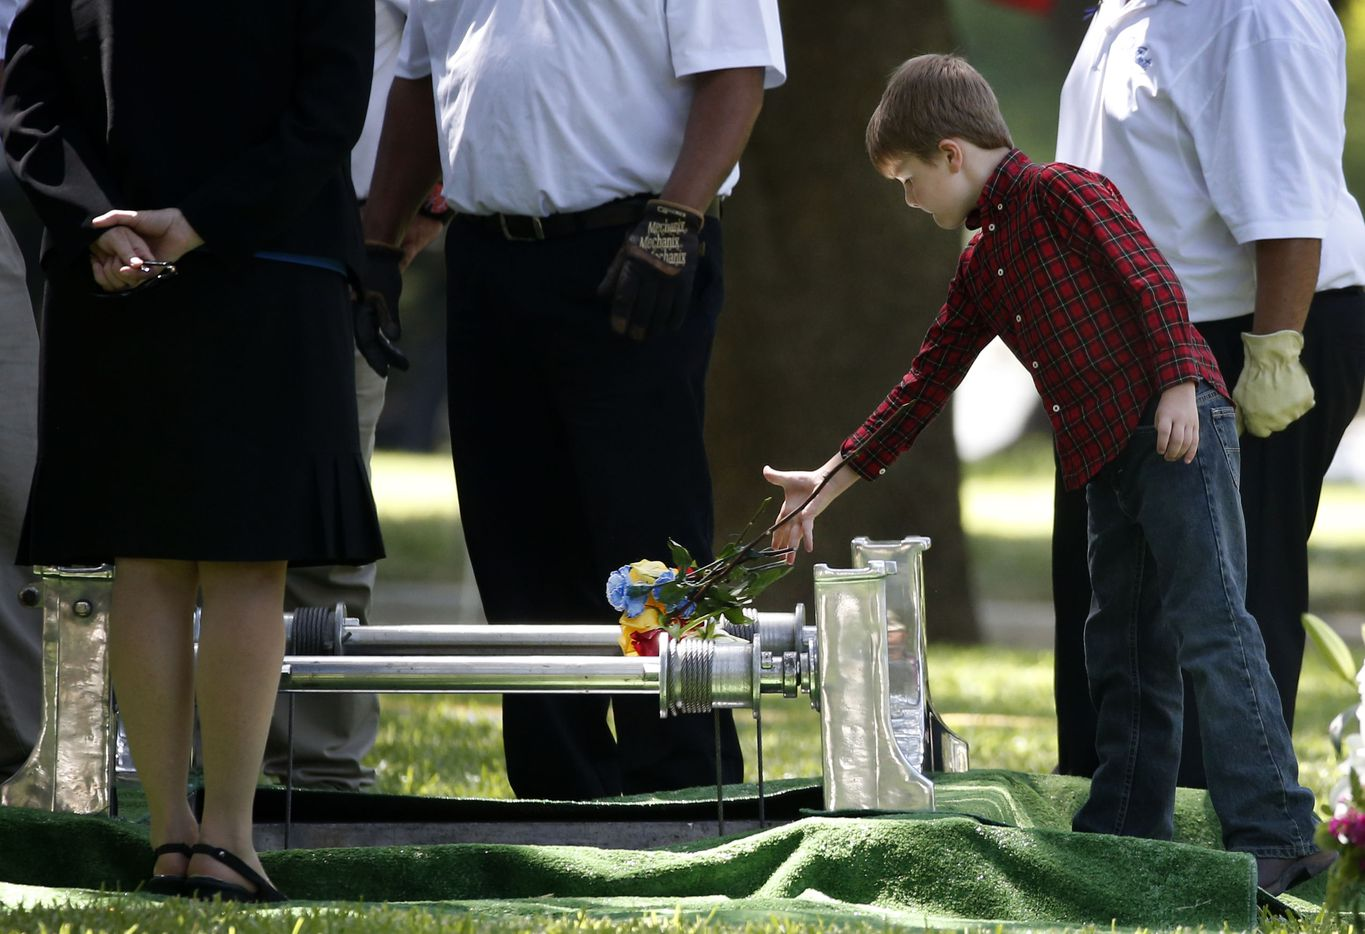 Magnus Ahrens, 8, son of fallen Dallas police officer Lorne Ahrens, drops flowers inside his father's grave in the Garden of Honor at Restland Funeral Home and Cemetery in Dallas on July 13, 2016. Ahrens and four other officers were gunned down during an ambush on police in downtown Dallas.